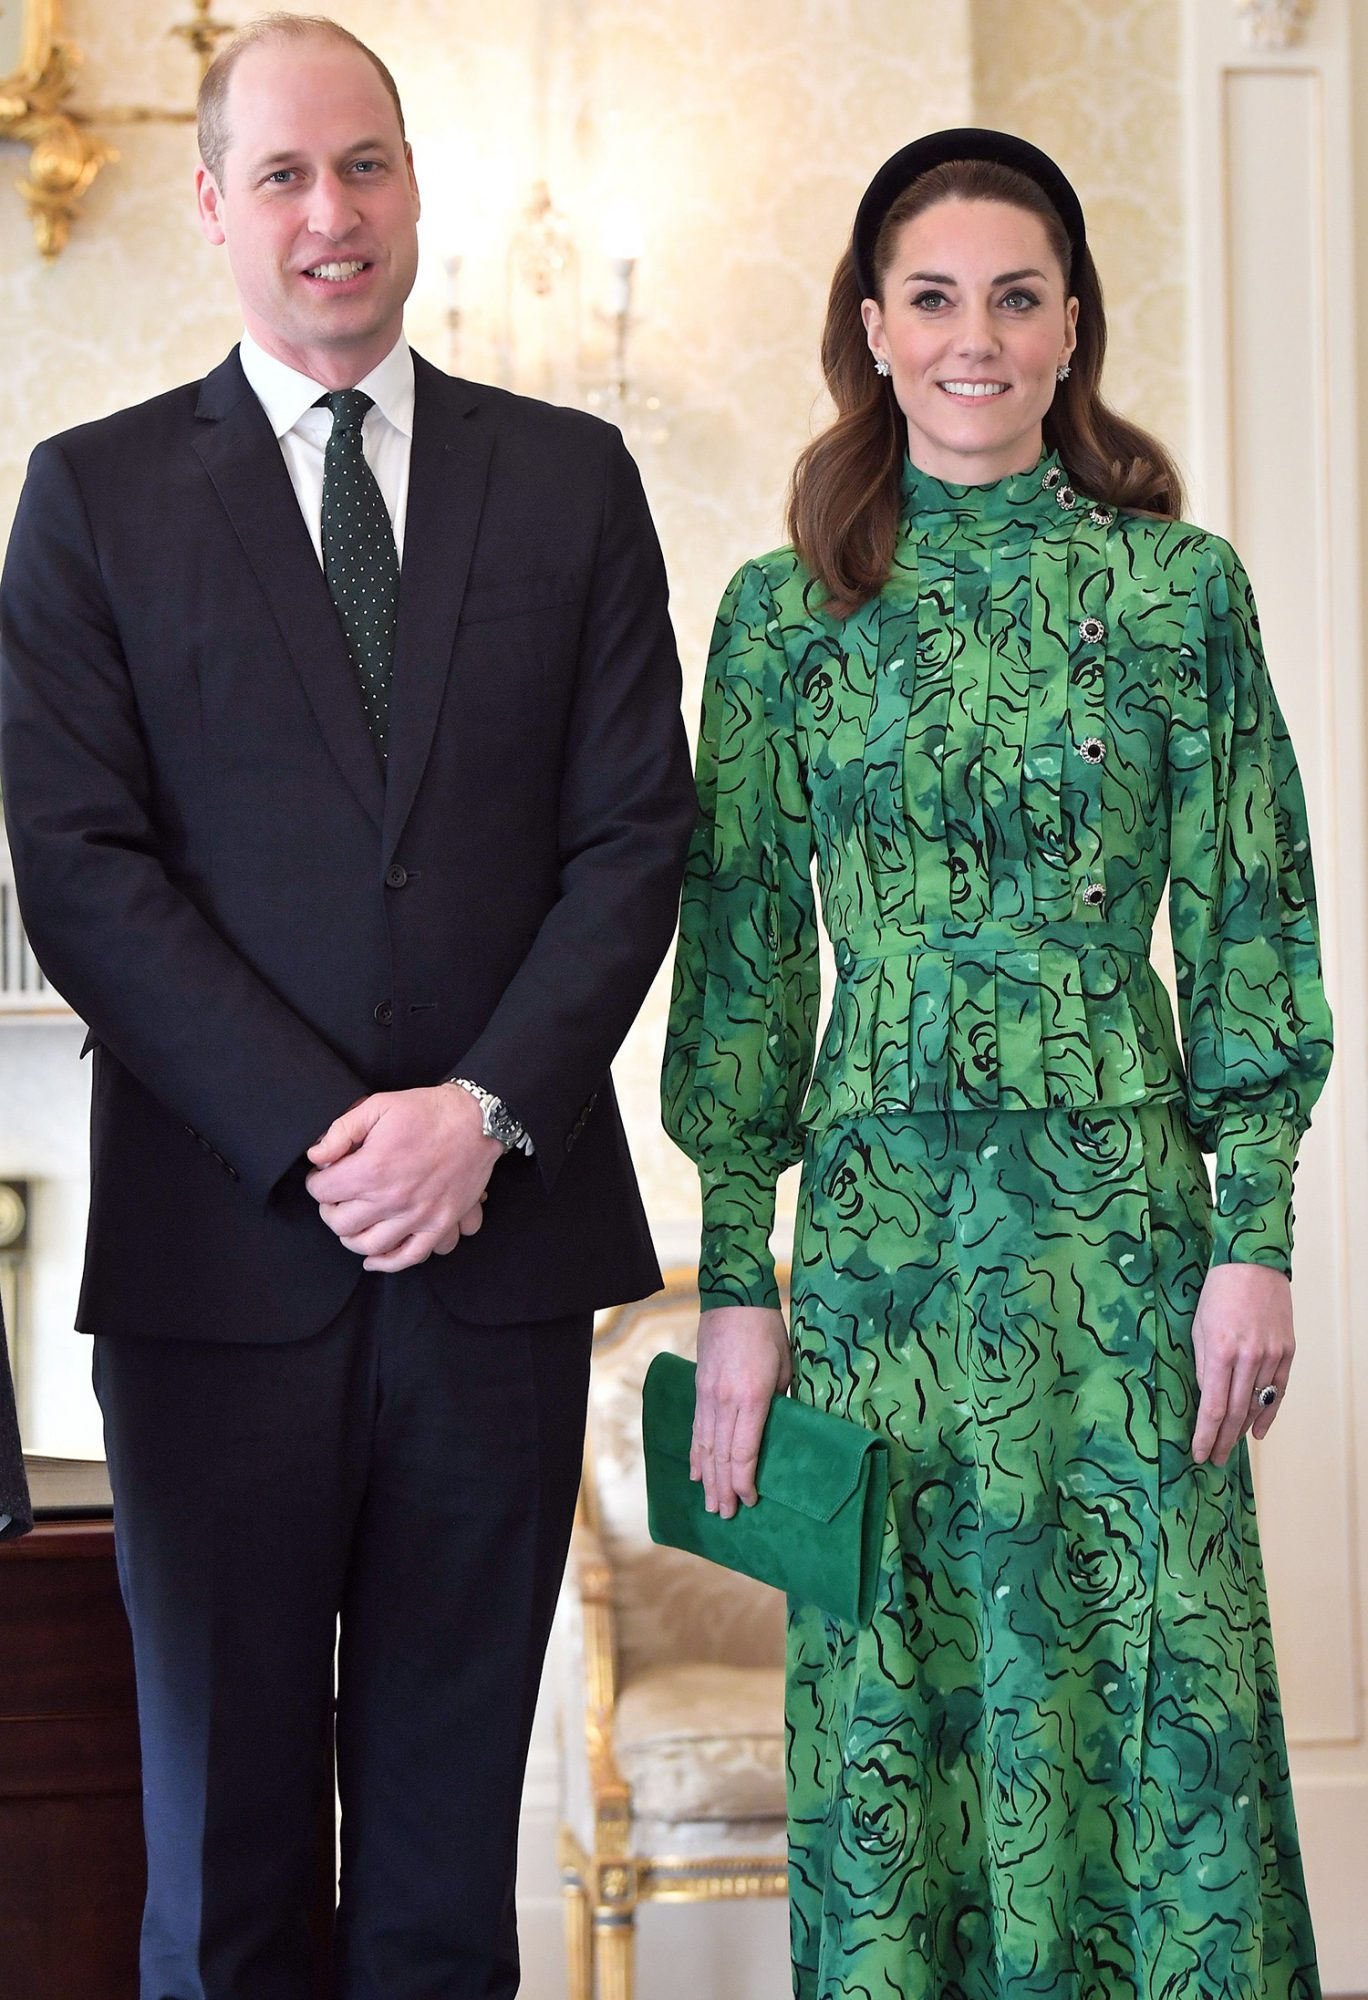 Prince William, Duke of Cambridge and Catherine, Duchess of Cambridge arrive for a meeting with the President of Ireland at Áras an Uachtaráin on March 03, 2020 in Dublin, Ireland